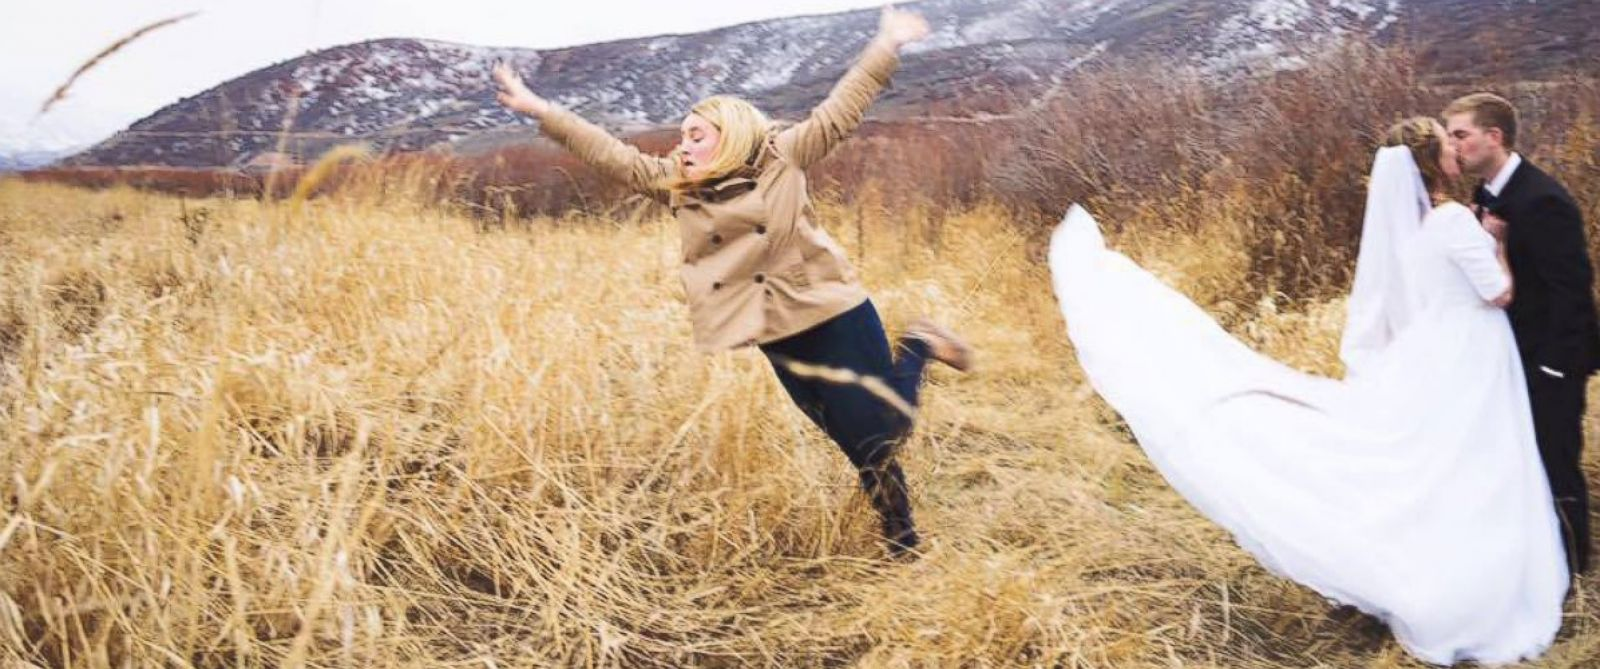 PHOTO: Janessa James proved shes the best bridesmaid by jumping out of her friends bridal photo, taken in Utah.